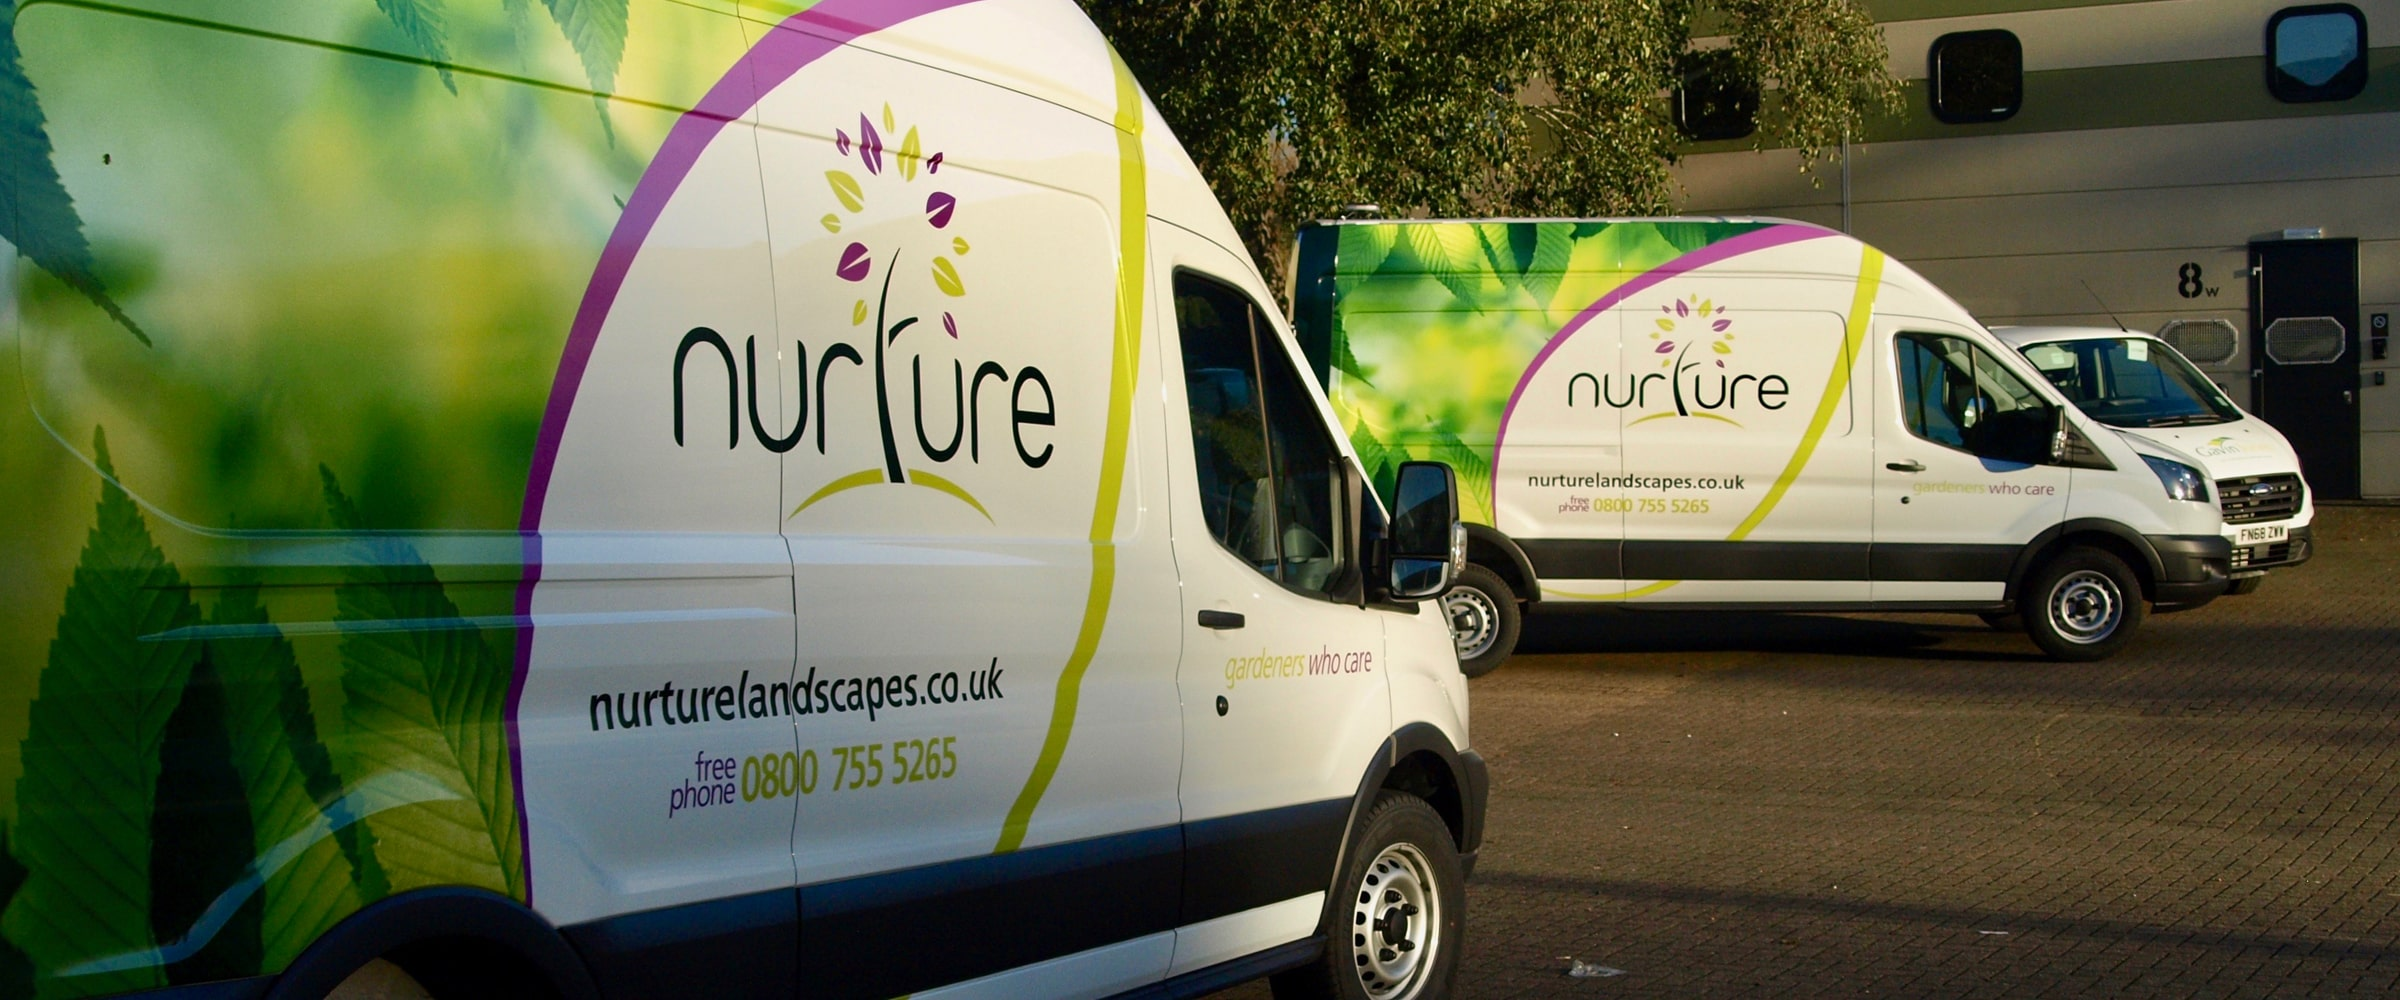 Nurture Group Fleet Branding